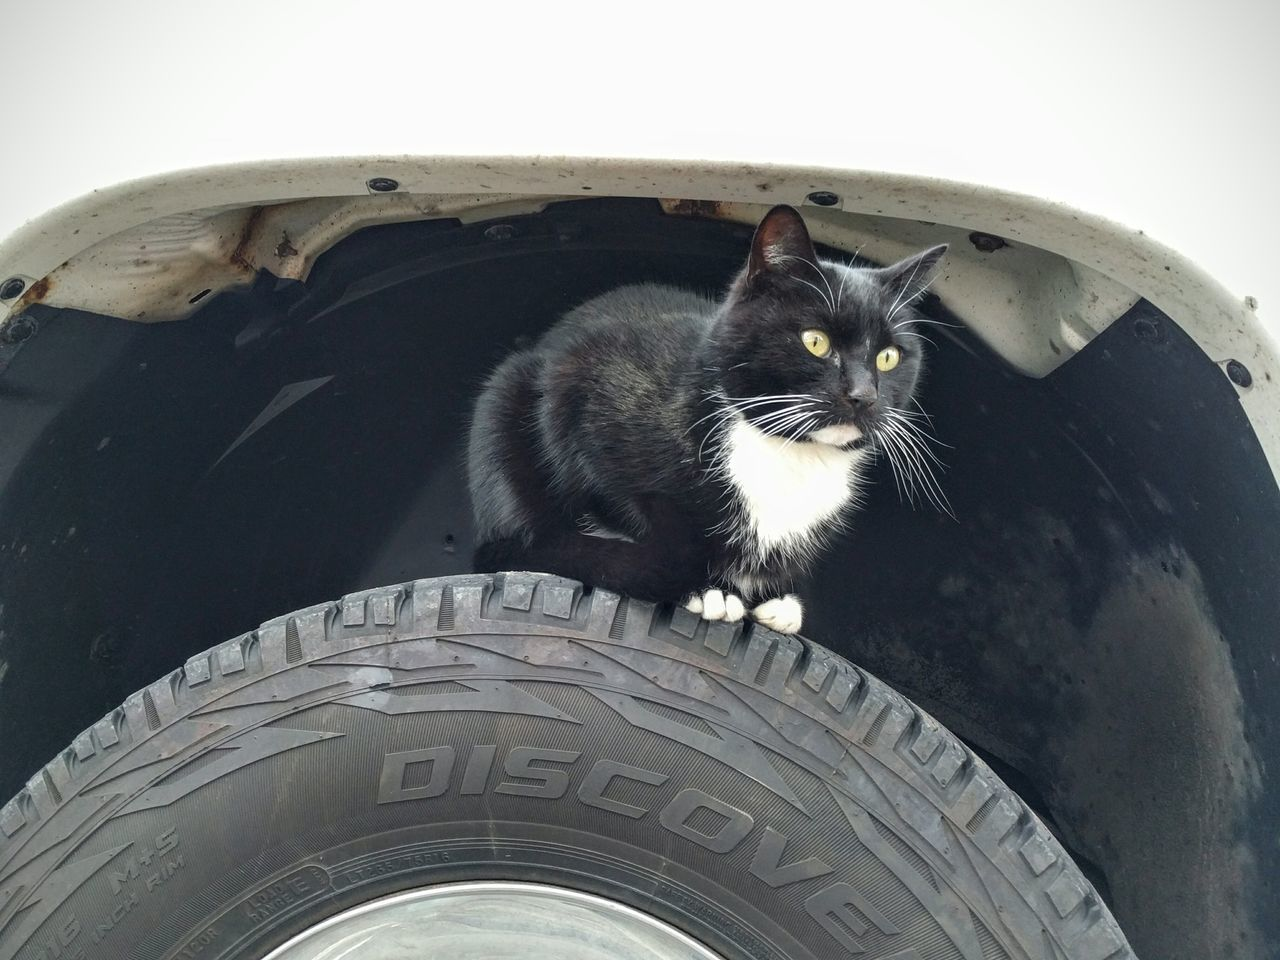 BLackCat Cat Wheelwell Truck Truck Tire Black And White And Color Relaxing Check This Out Hanging Out Enjoying Life